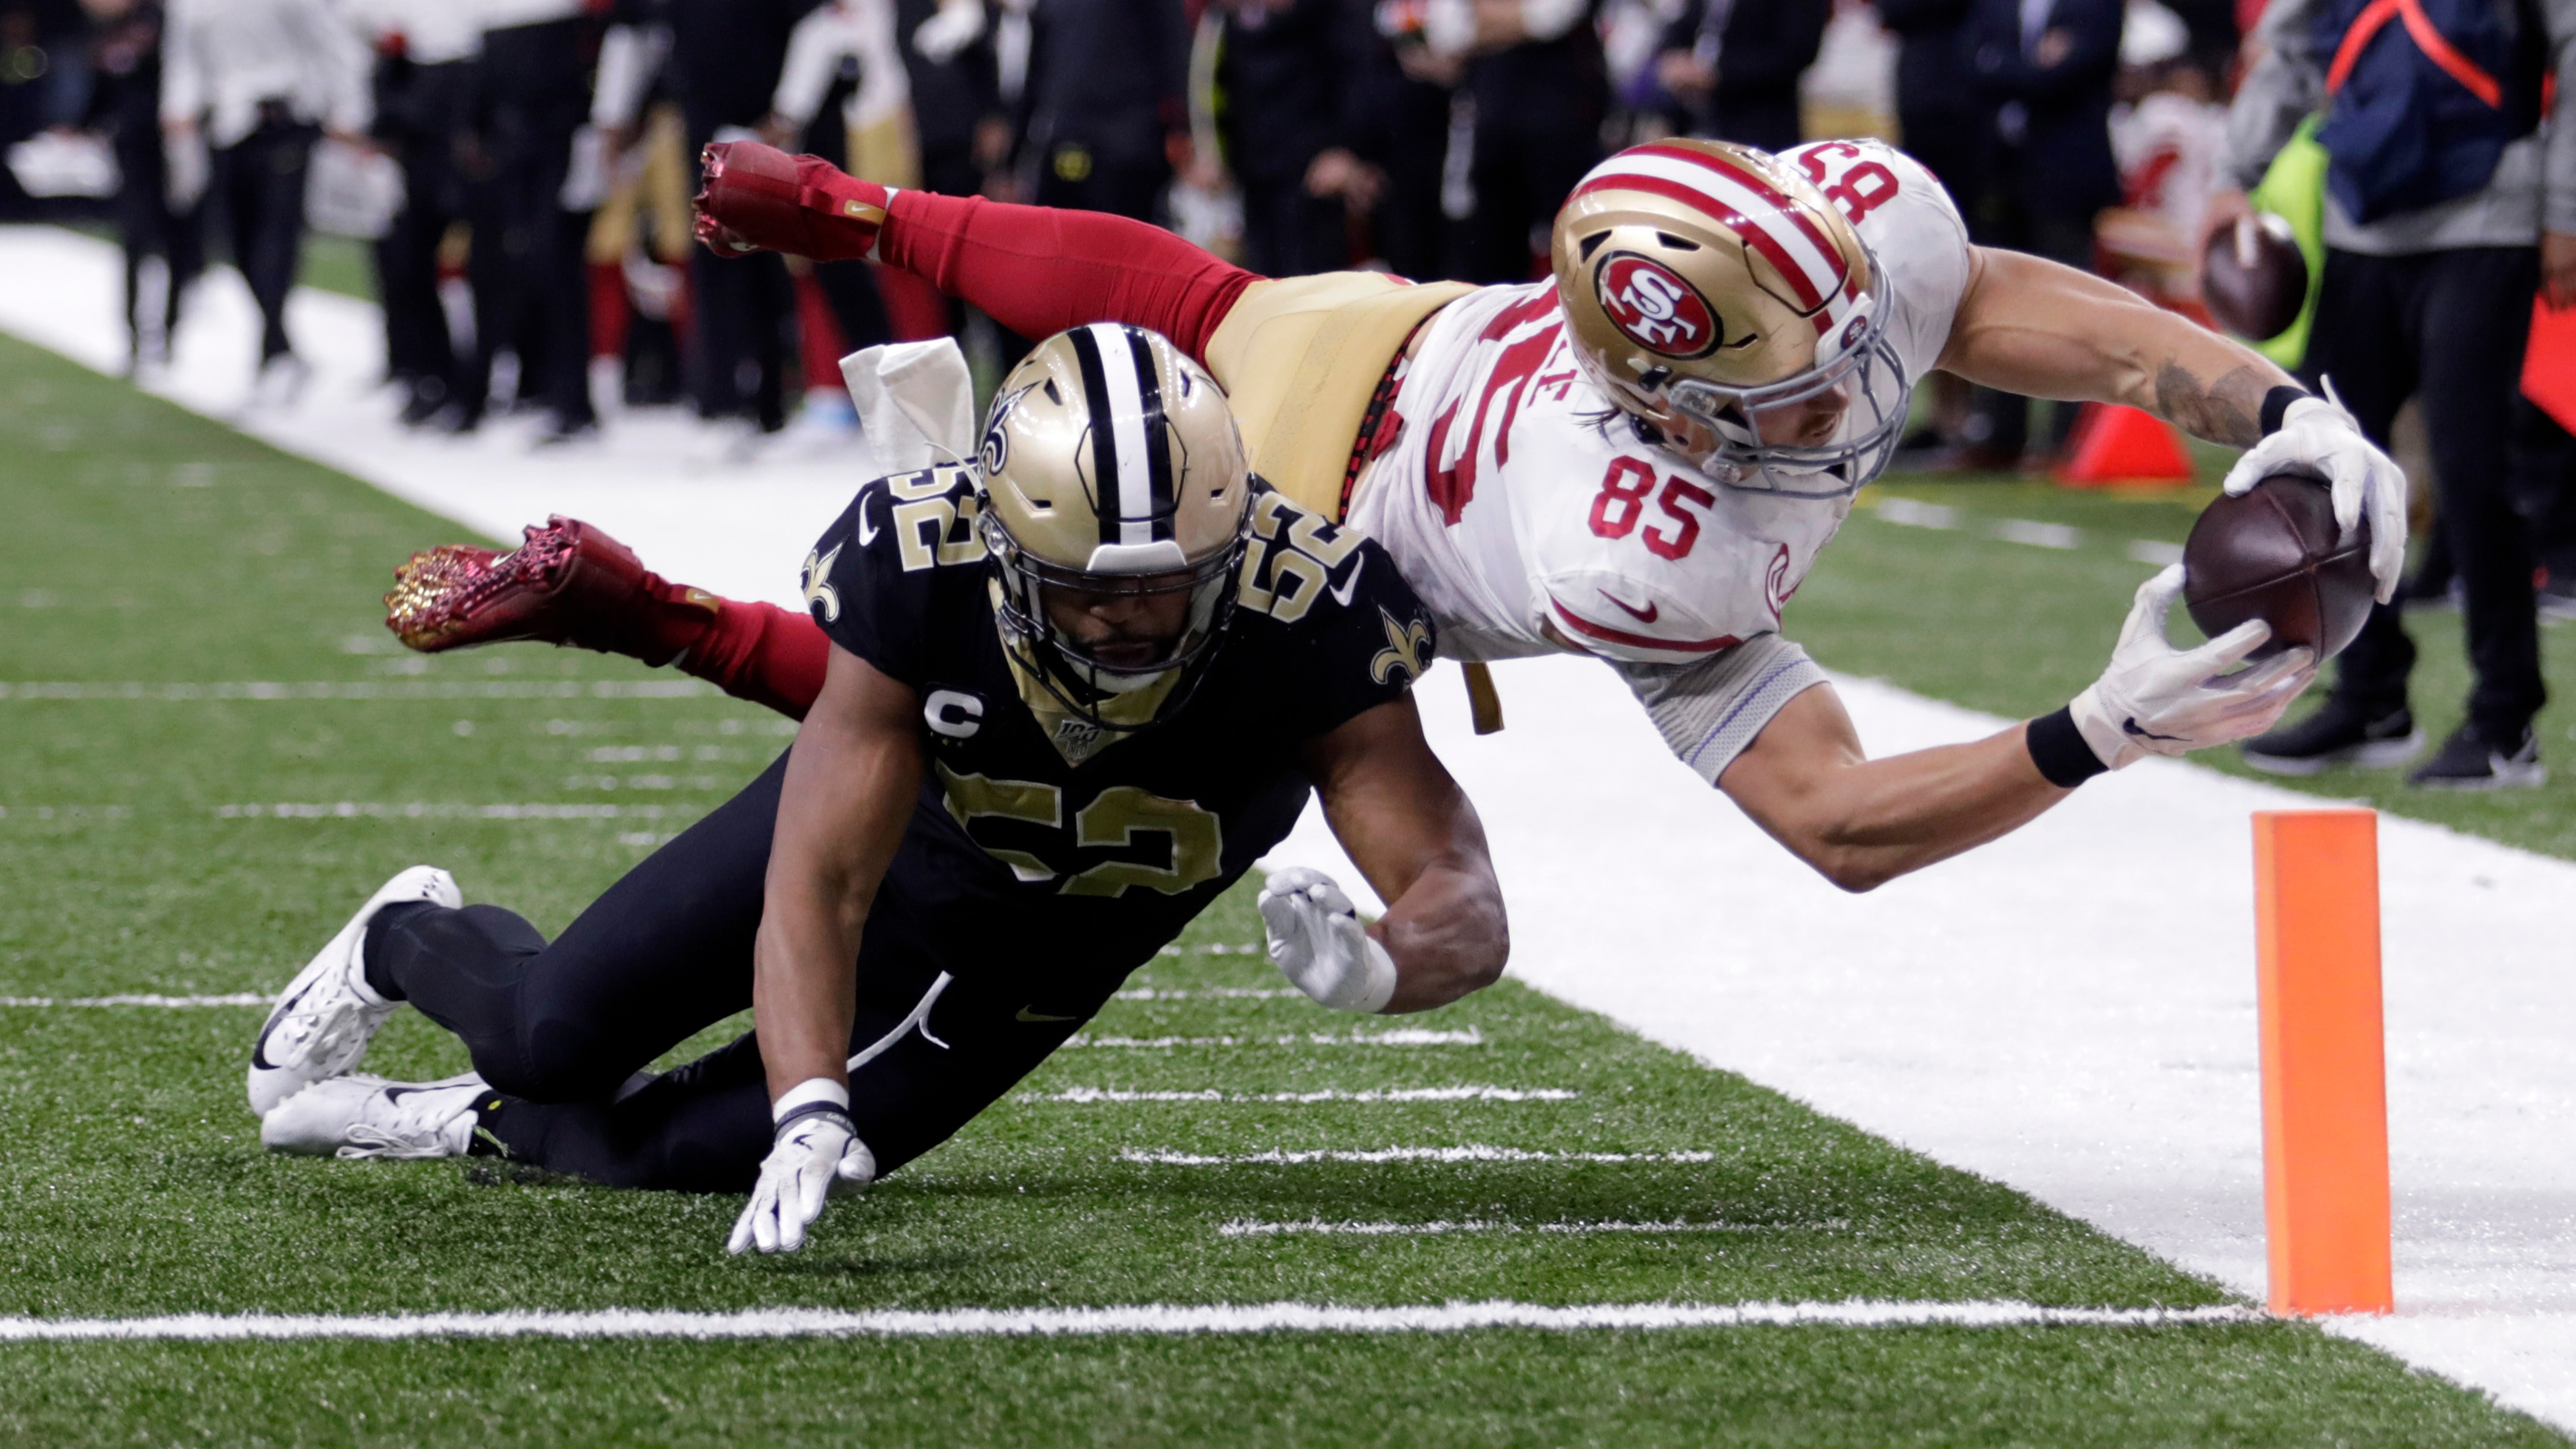 Week 14 Nfl Bad Beats Crazy Finishes 49ers Chiefs Score Road Upsets Colts Collapse